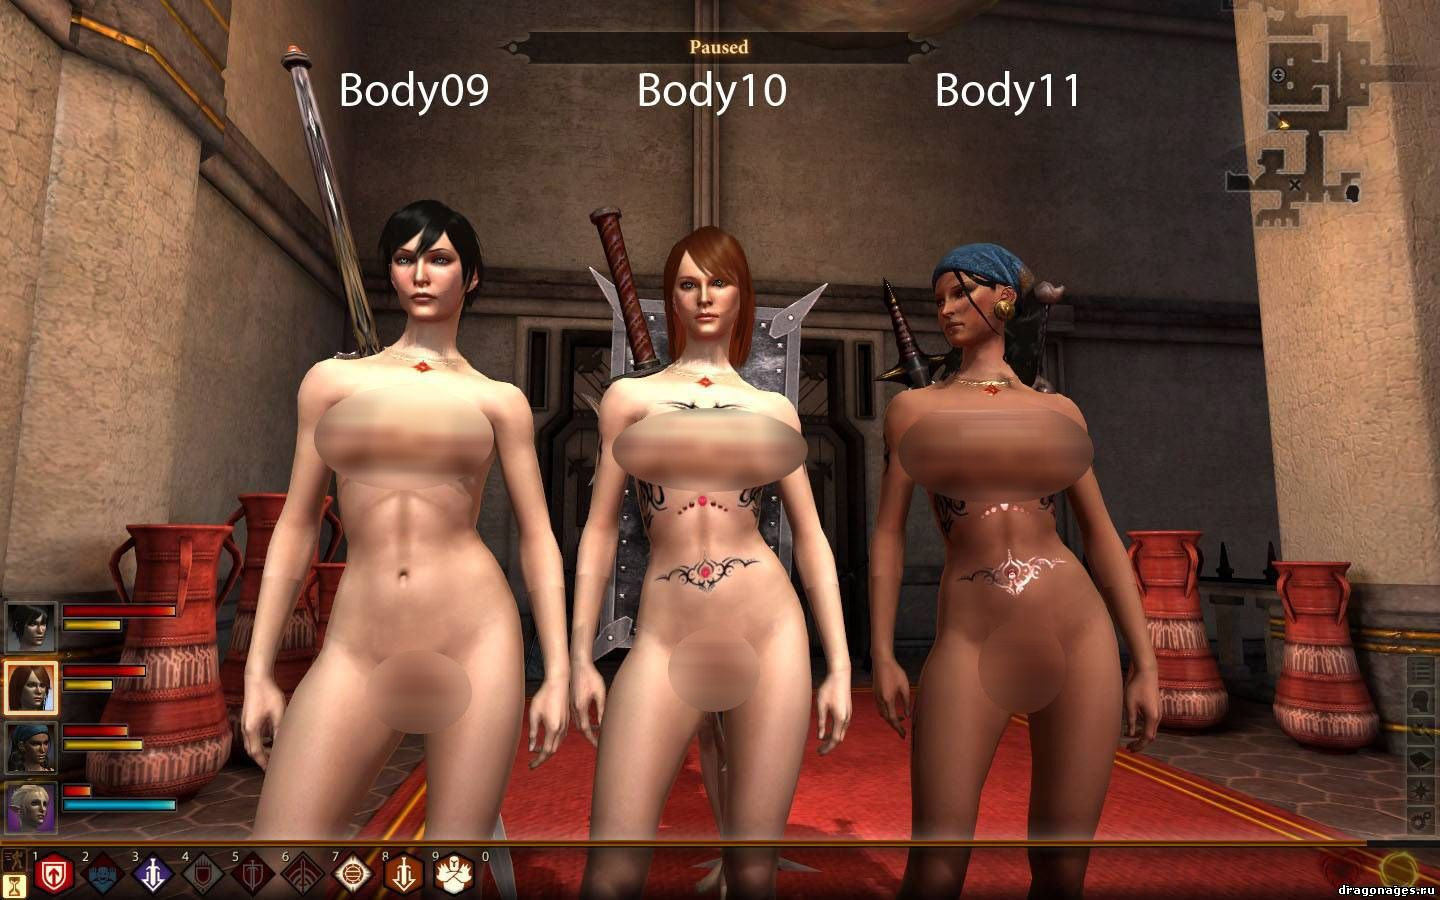 Dragon age 2 naked mod porn video